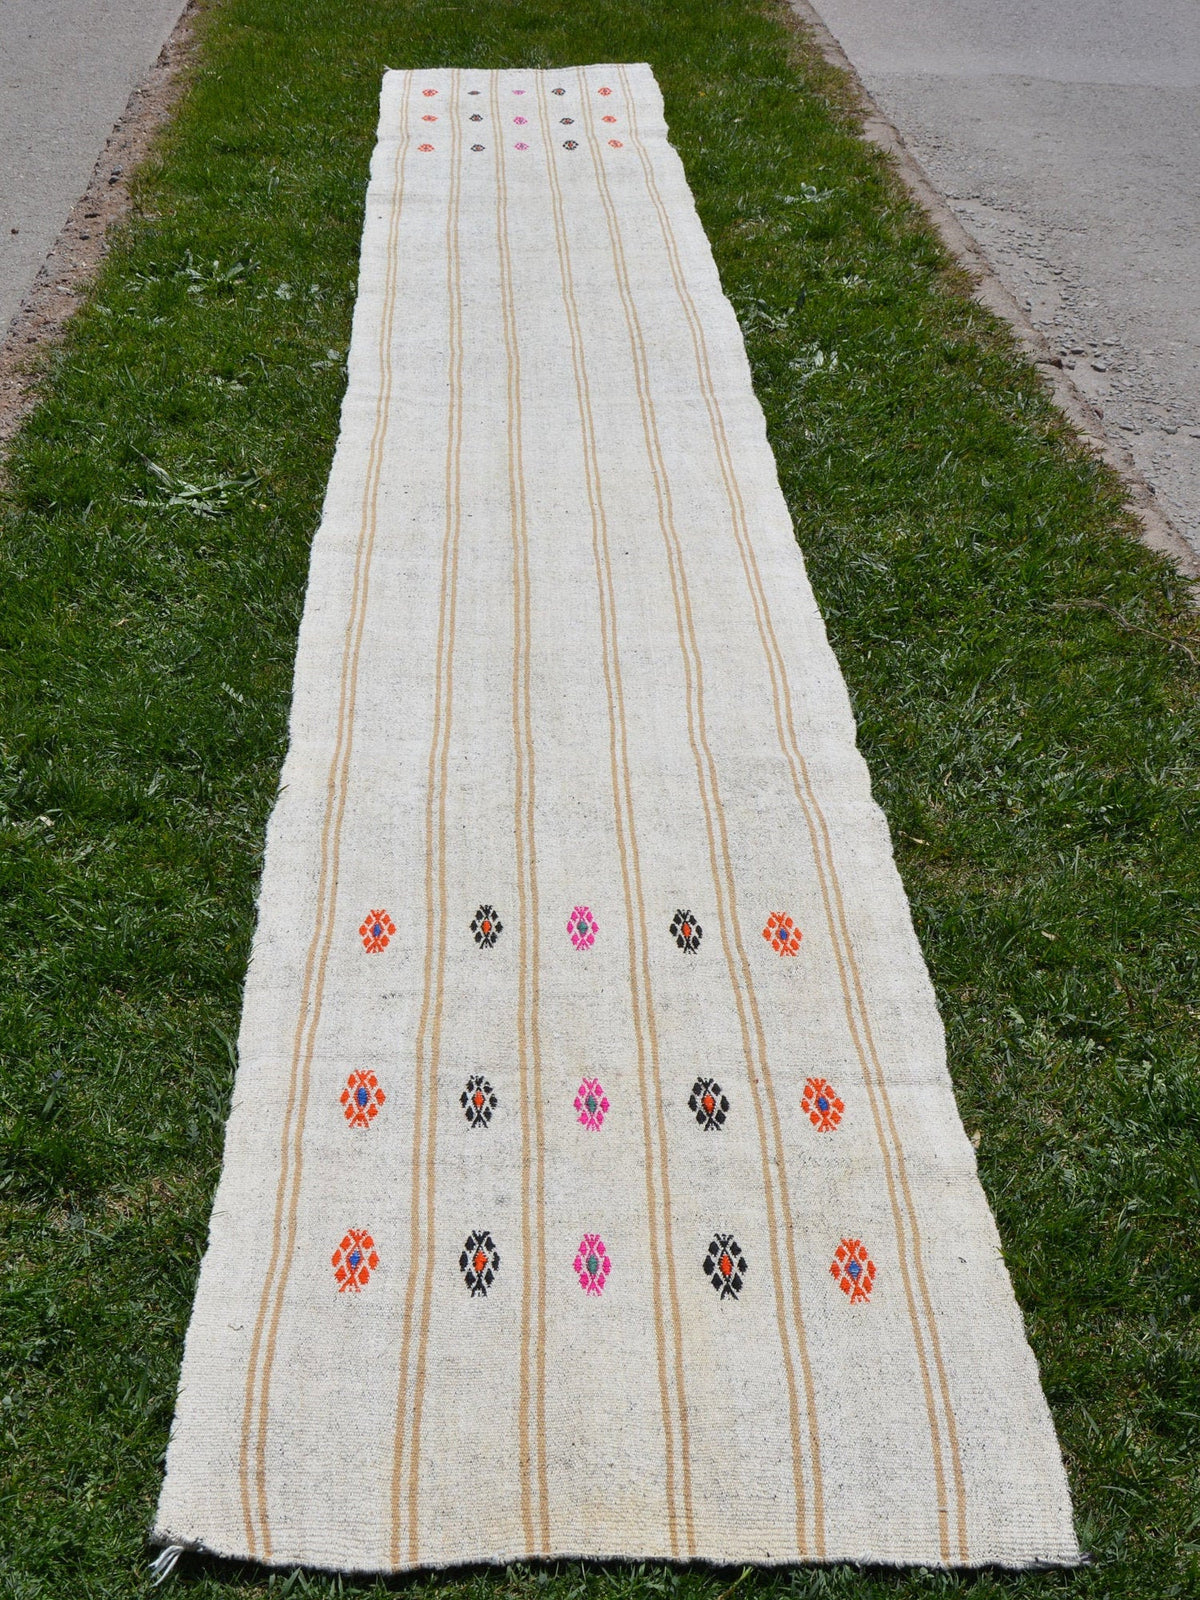 Vintage Runner Oushak Rug, Hand Knotted Rug, Turkish Rug, Handwoven Rug, Muted Rug, Turkish Oushak Rug, Unique Rug,   2.2 x 16.4 Feet AG1865